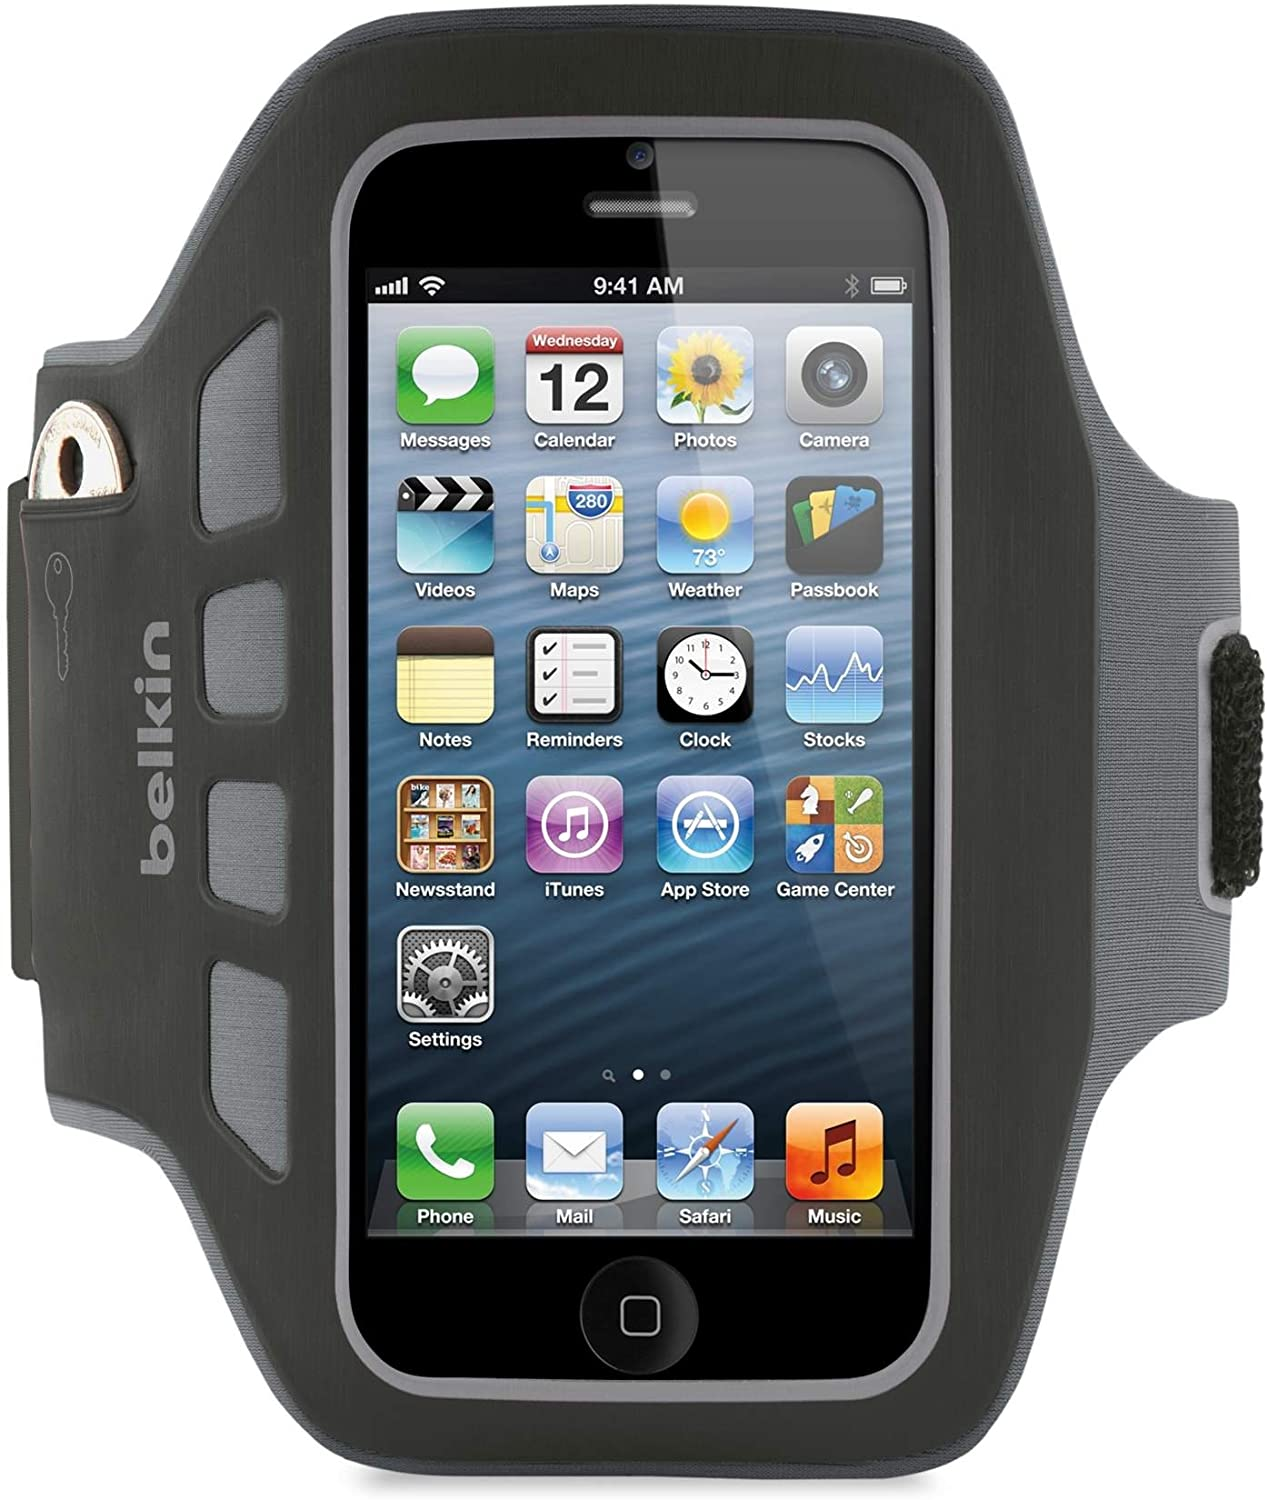 Belkin Ease-Fit Plus Armband for iPhone 5 / 5S / 5c / SE (Black)